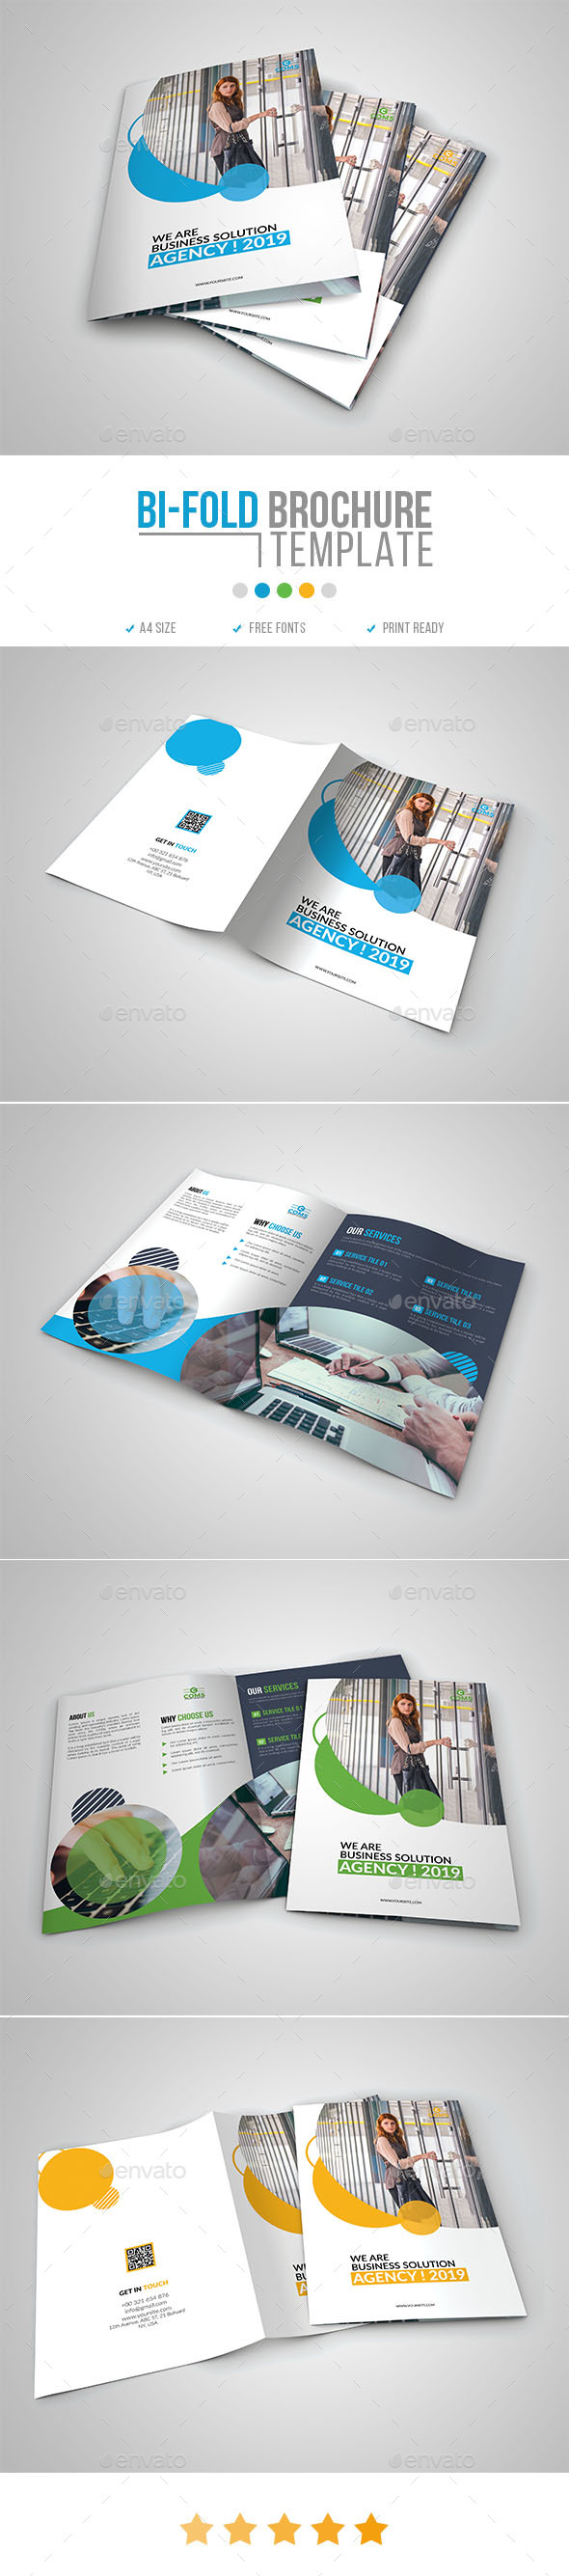 Corporate Bi-Fold Brochure Template 12 - Corporate Brochures